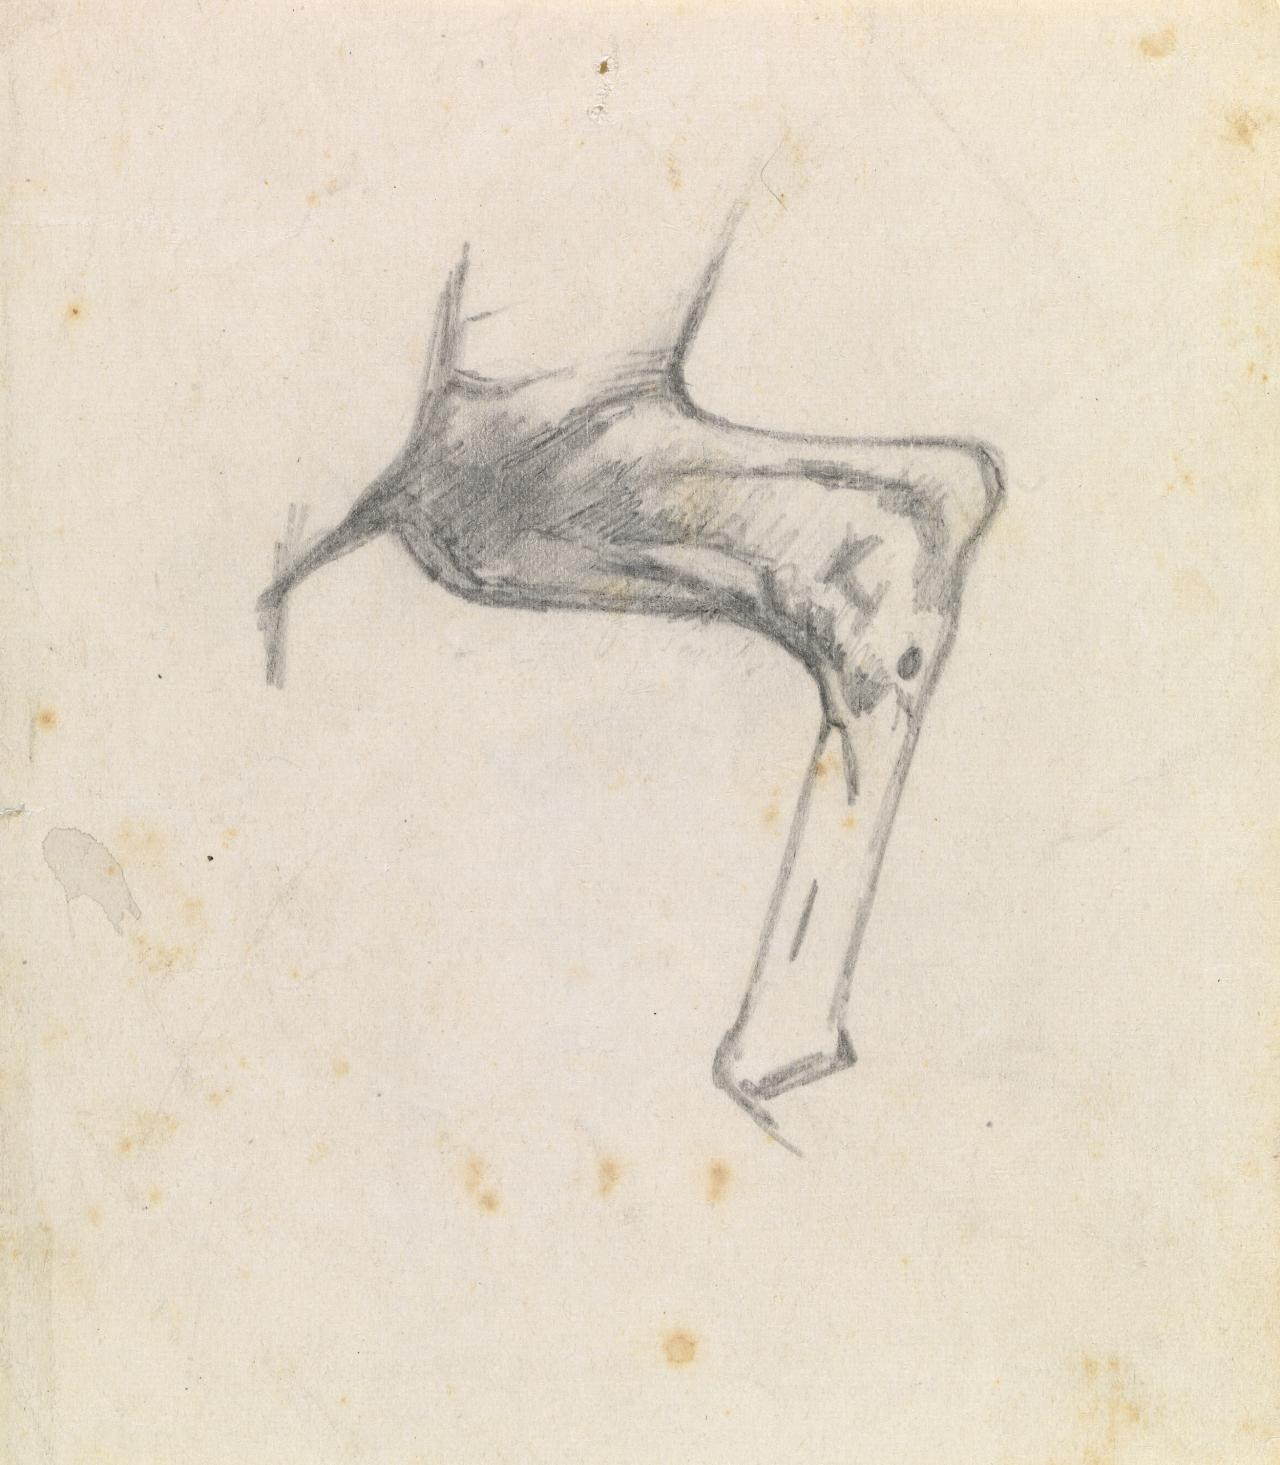 Study of horse's hind leg